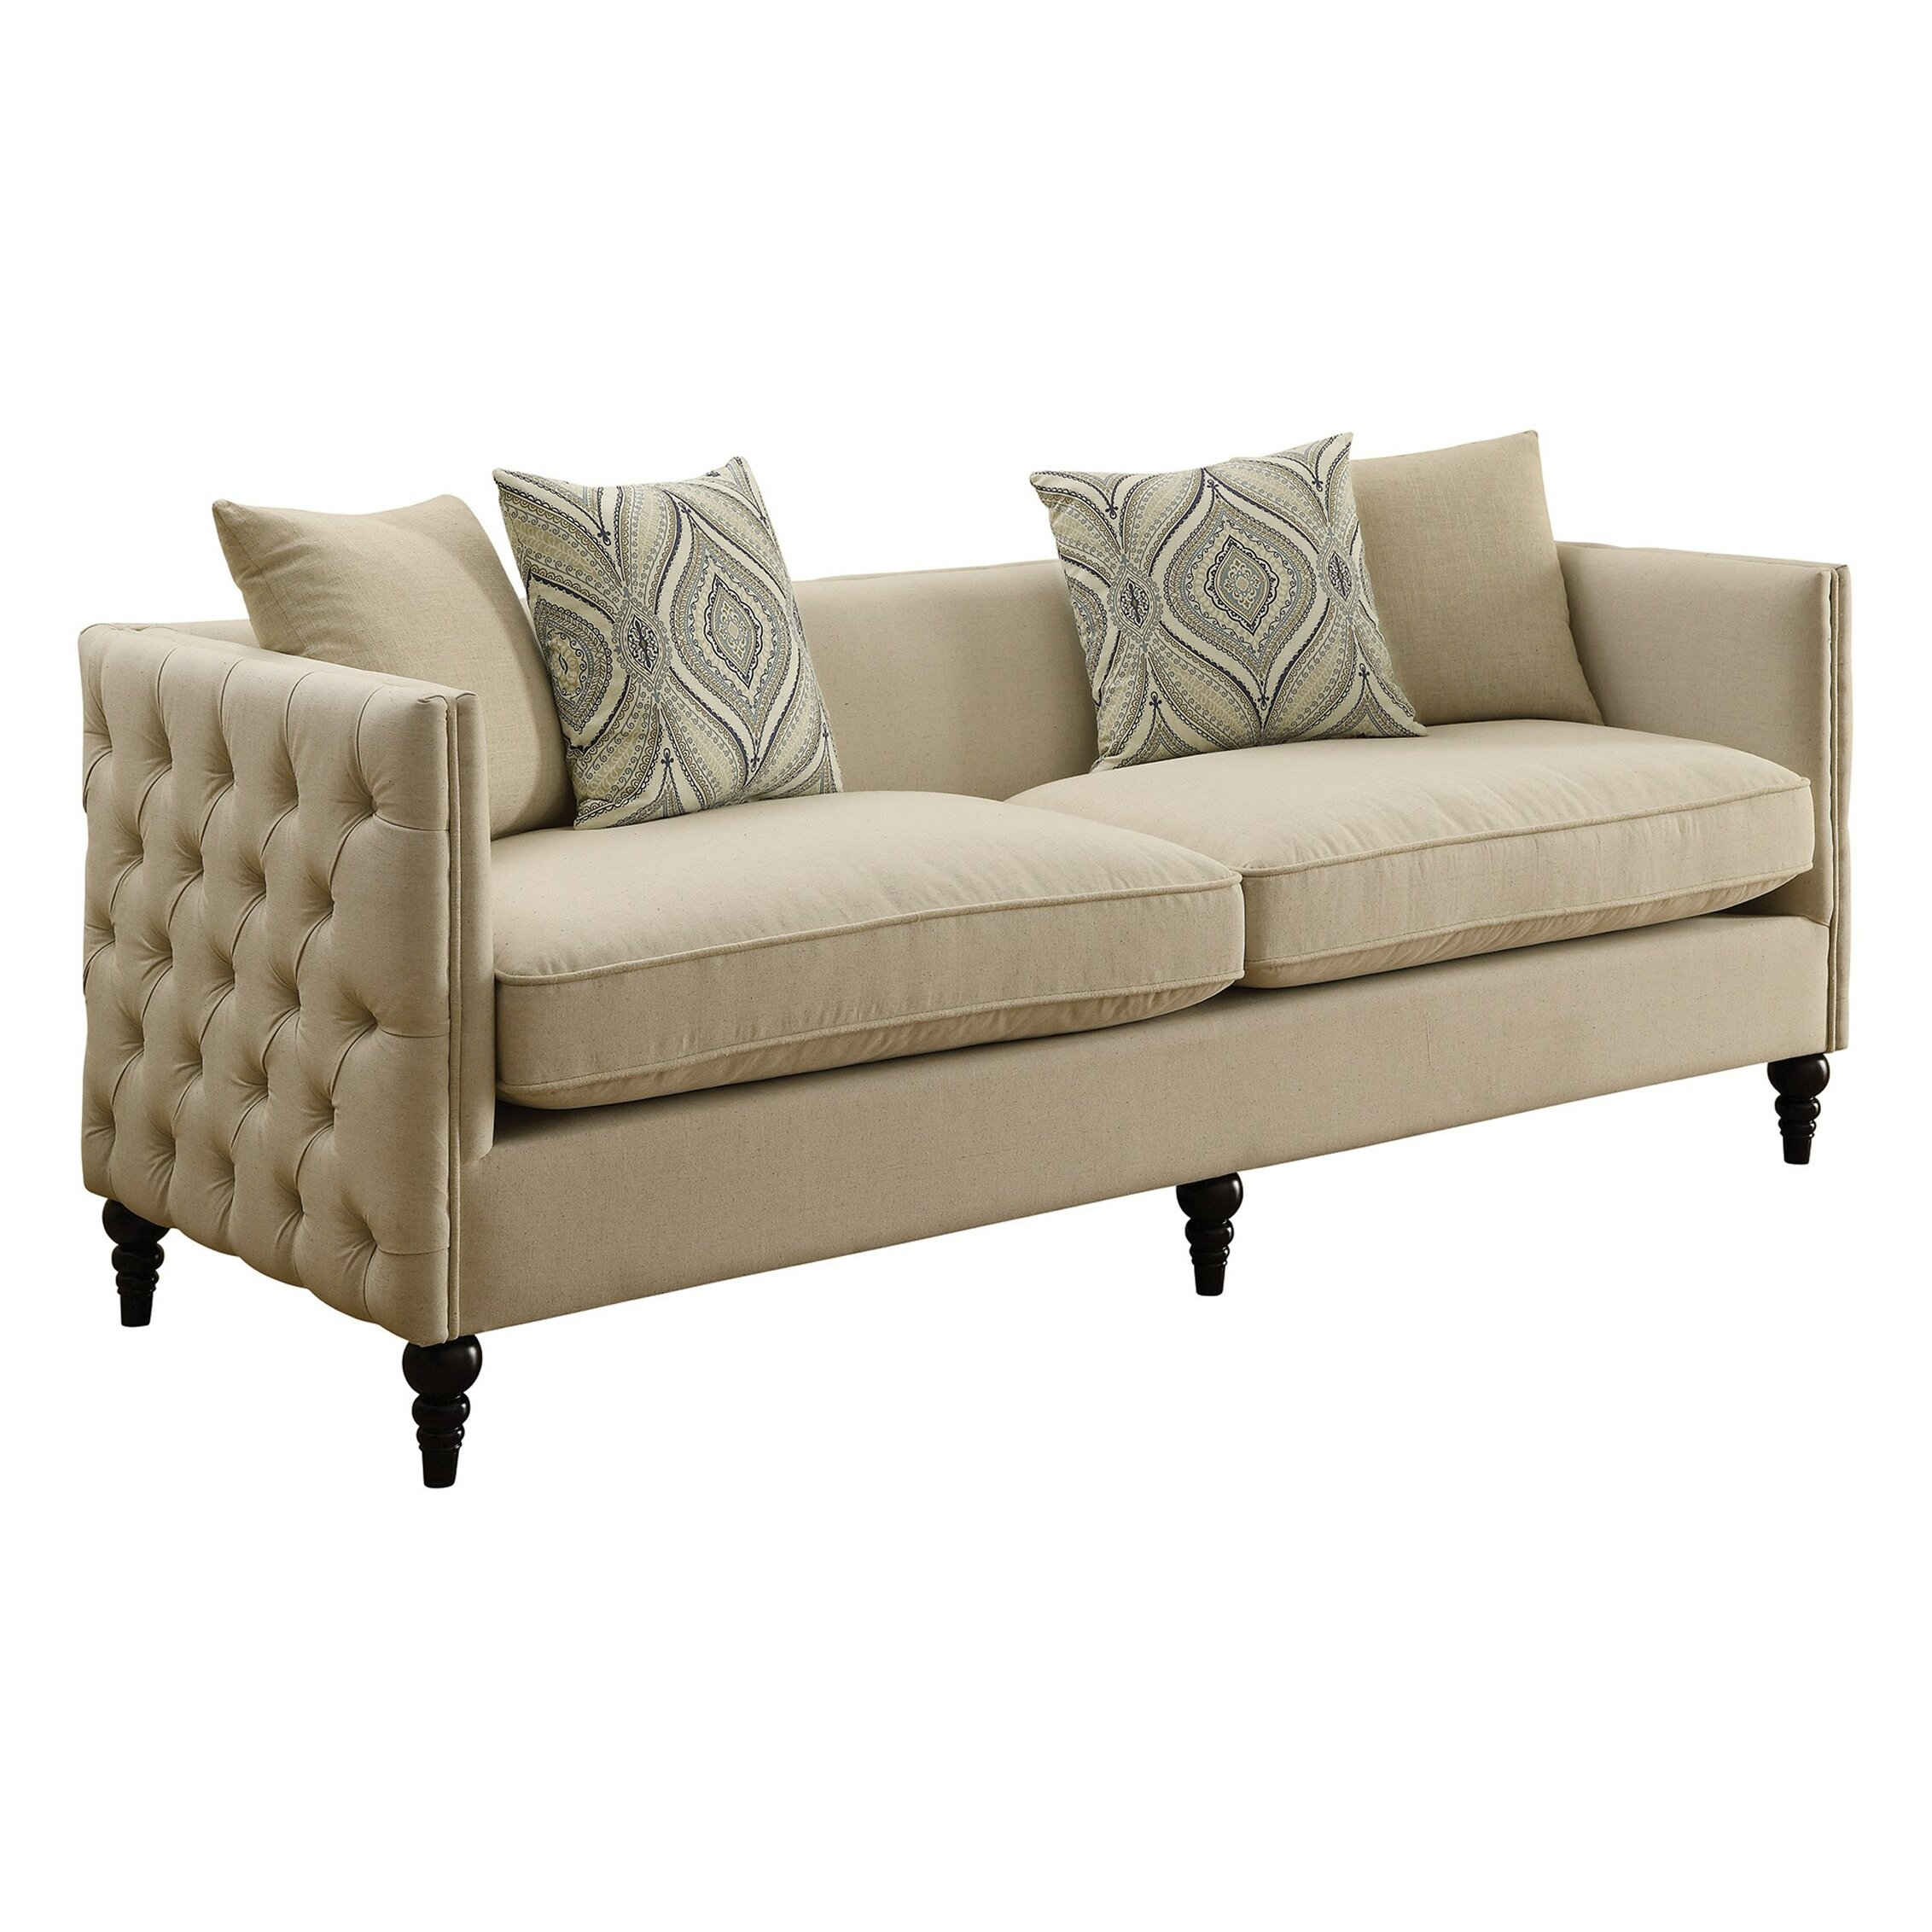 Infini furnishings new rochelle sofa and loveseat set for Couch und sofa